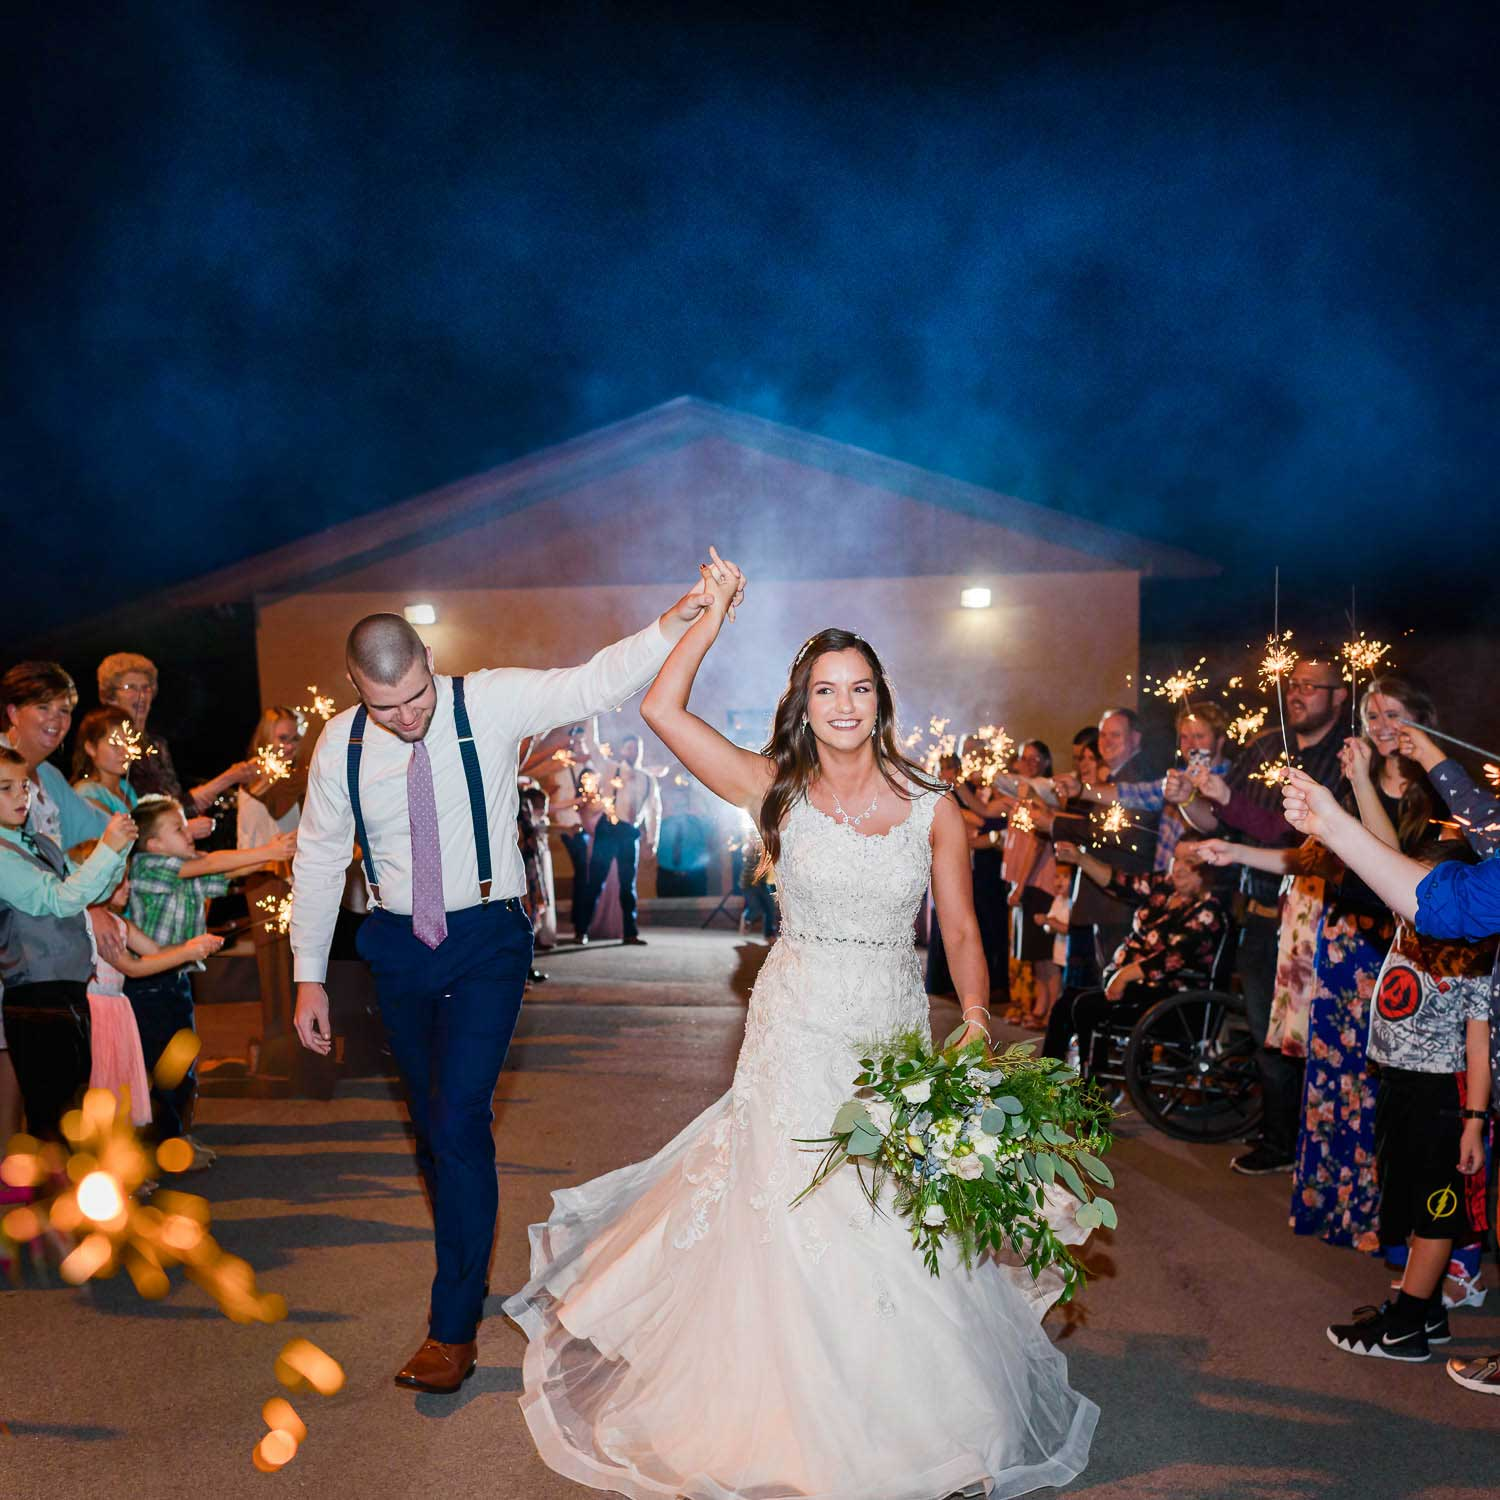 Bride and groom cheering as they leave with a nighttime wedding sparkler exit in Knoxville TN